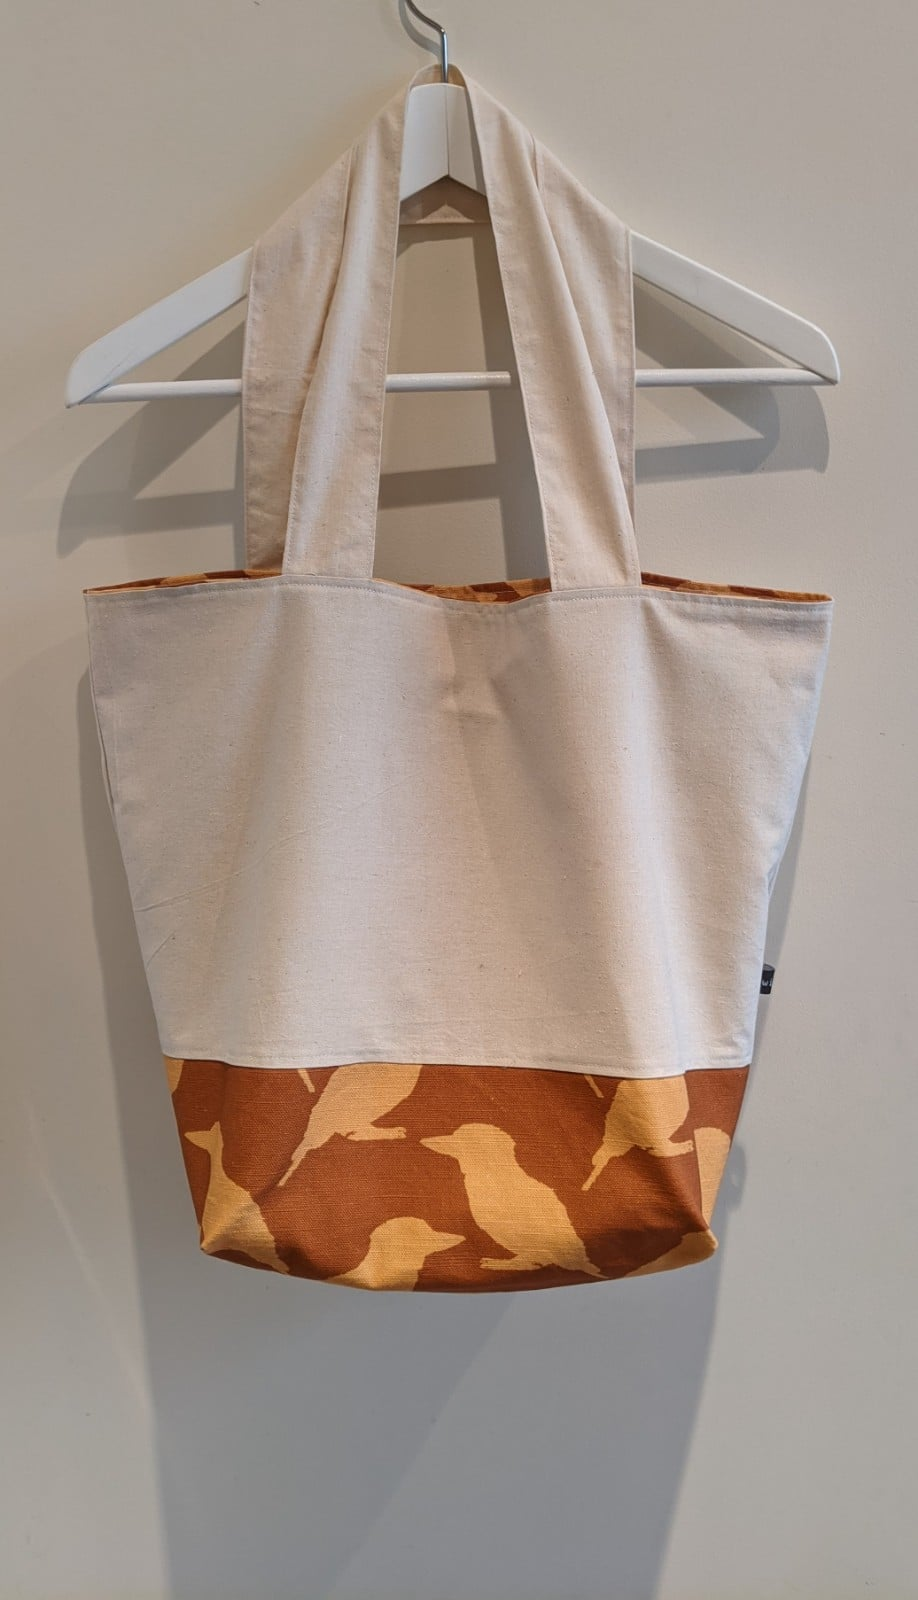 Practical Reversible Kookaburra Linen Tote Bag – Tan And Yellow By Ana Williams